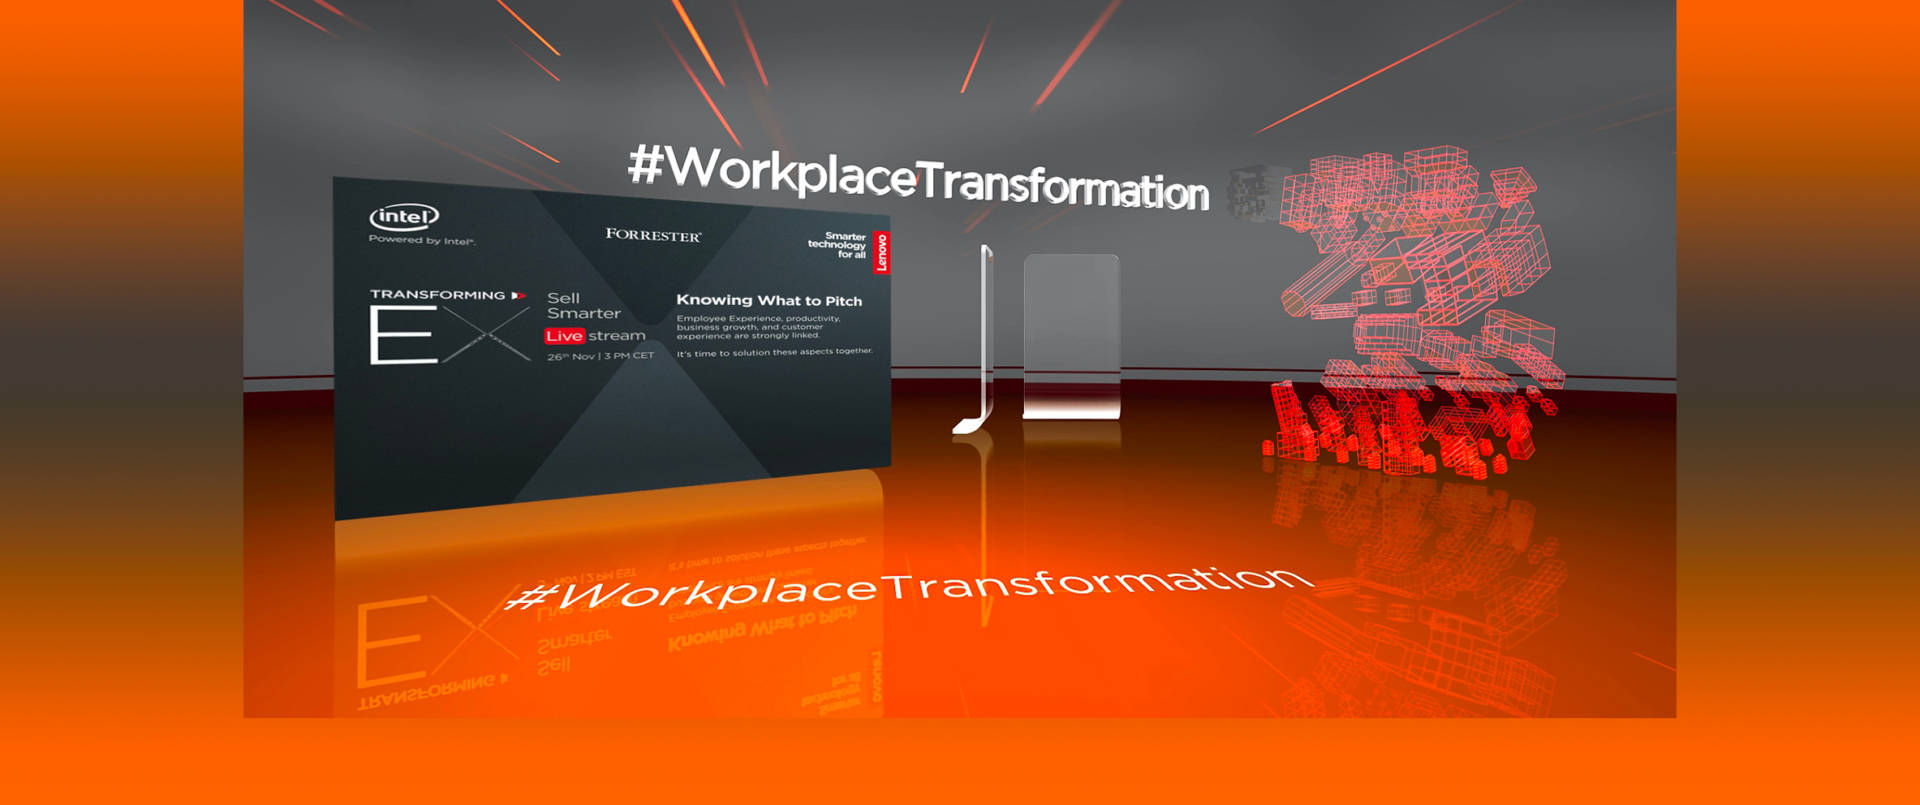 Workplace Transformation: l'evento in streaming con Lenovo, Intel e Forrester powered by Digitalic